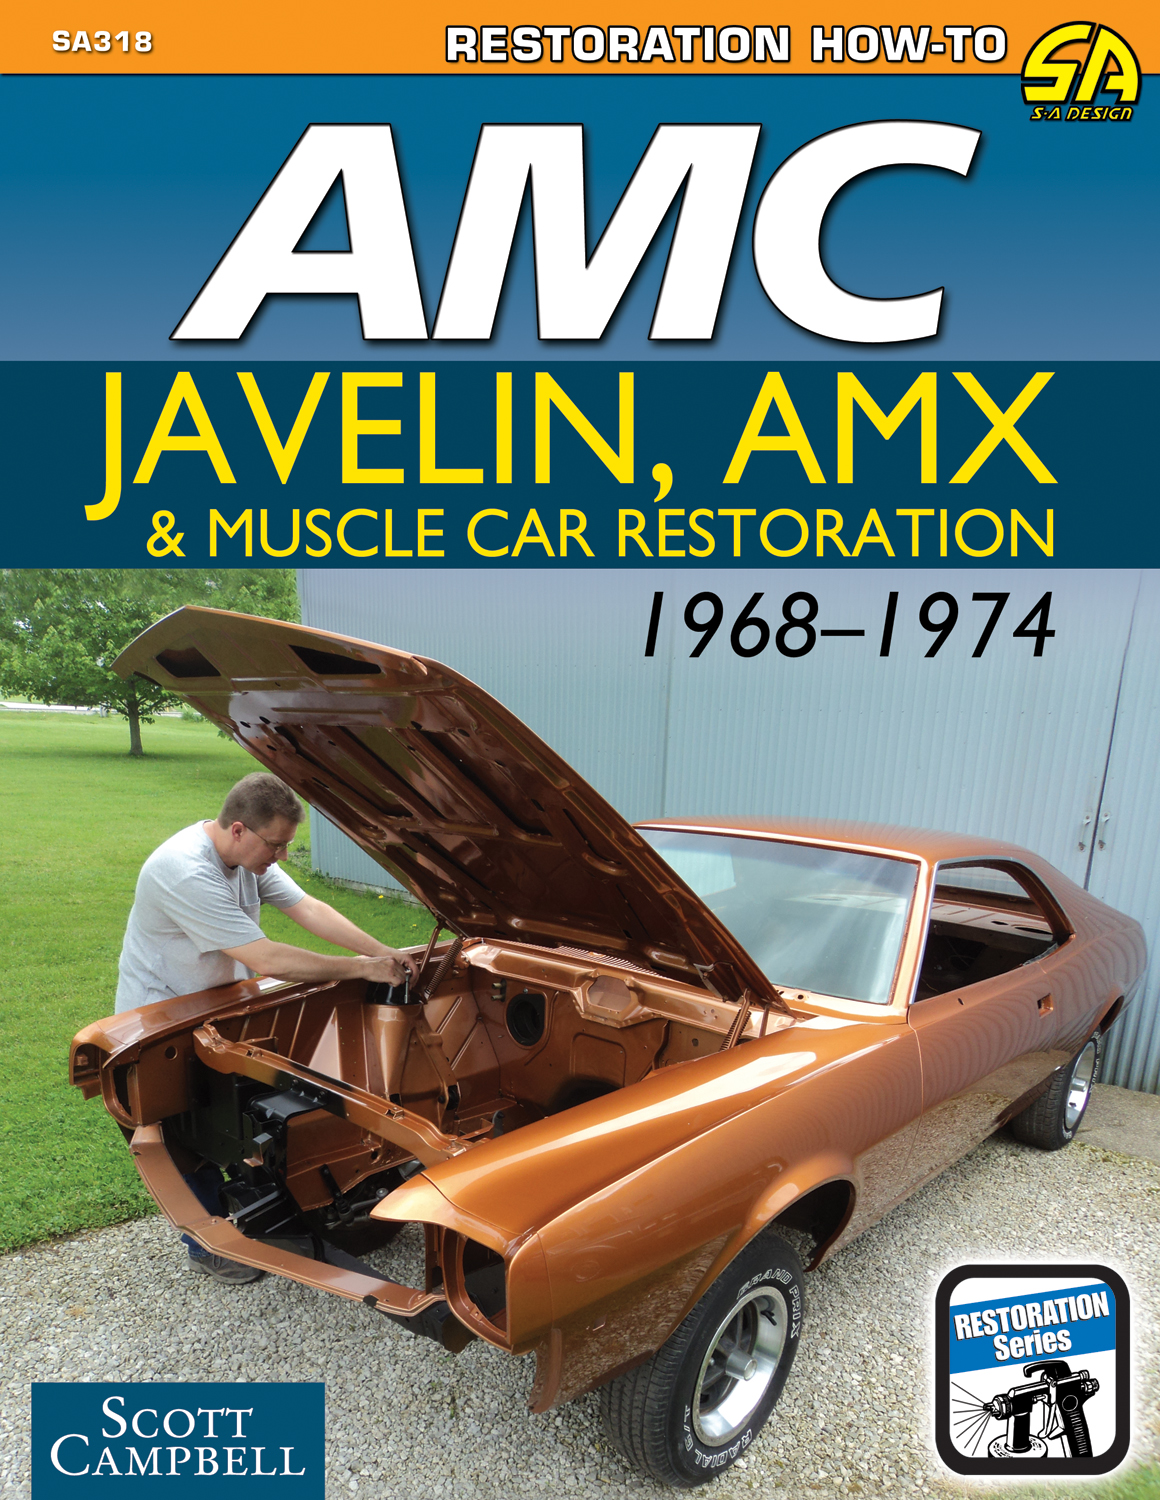 Car Restoration Manual Free Wiring Diagram For You Triumph Stag Amc Javelin Amx 1968 74 Muscle Guide Rh Ebay Com Wheeler Dealers